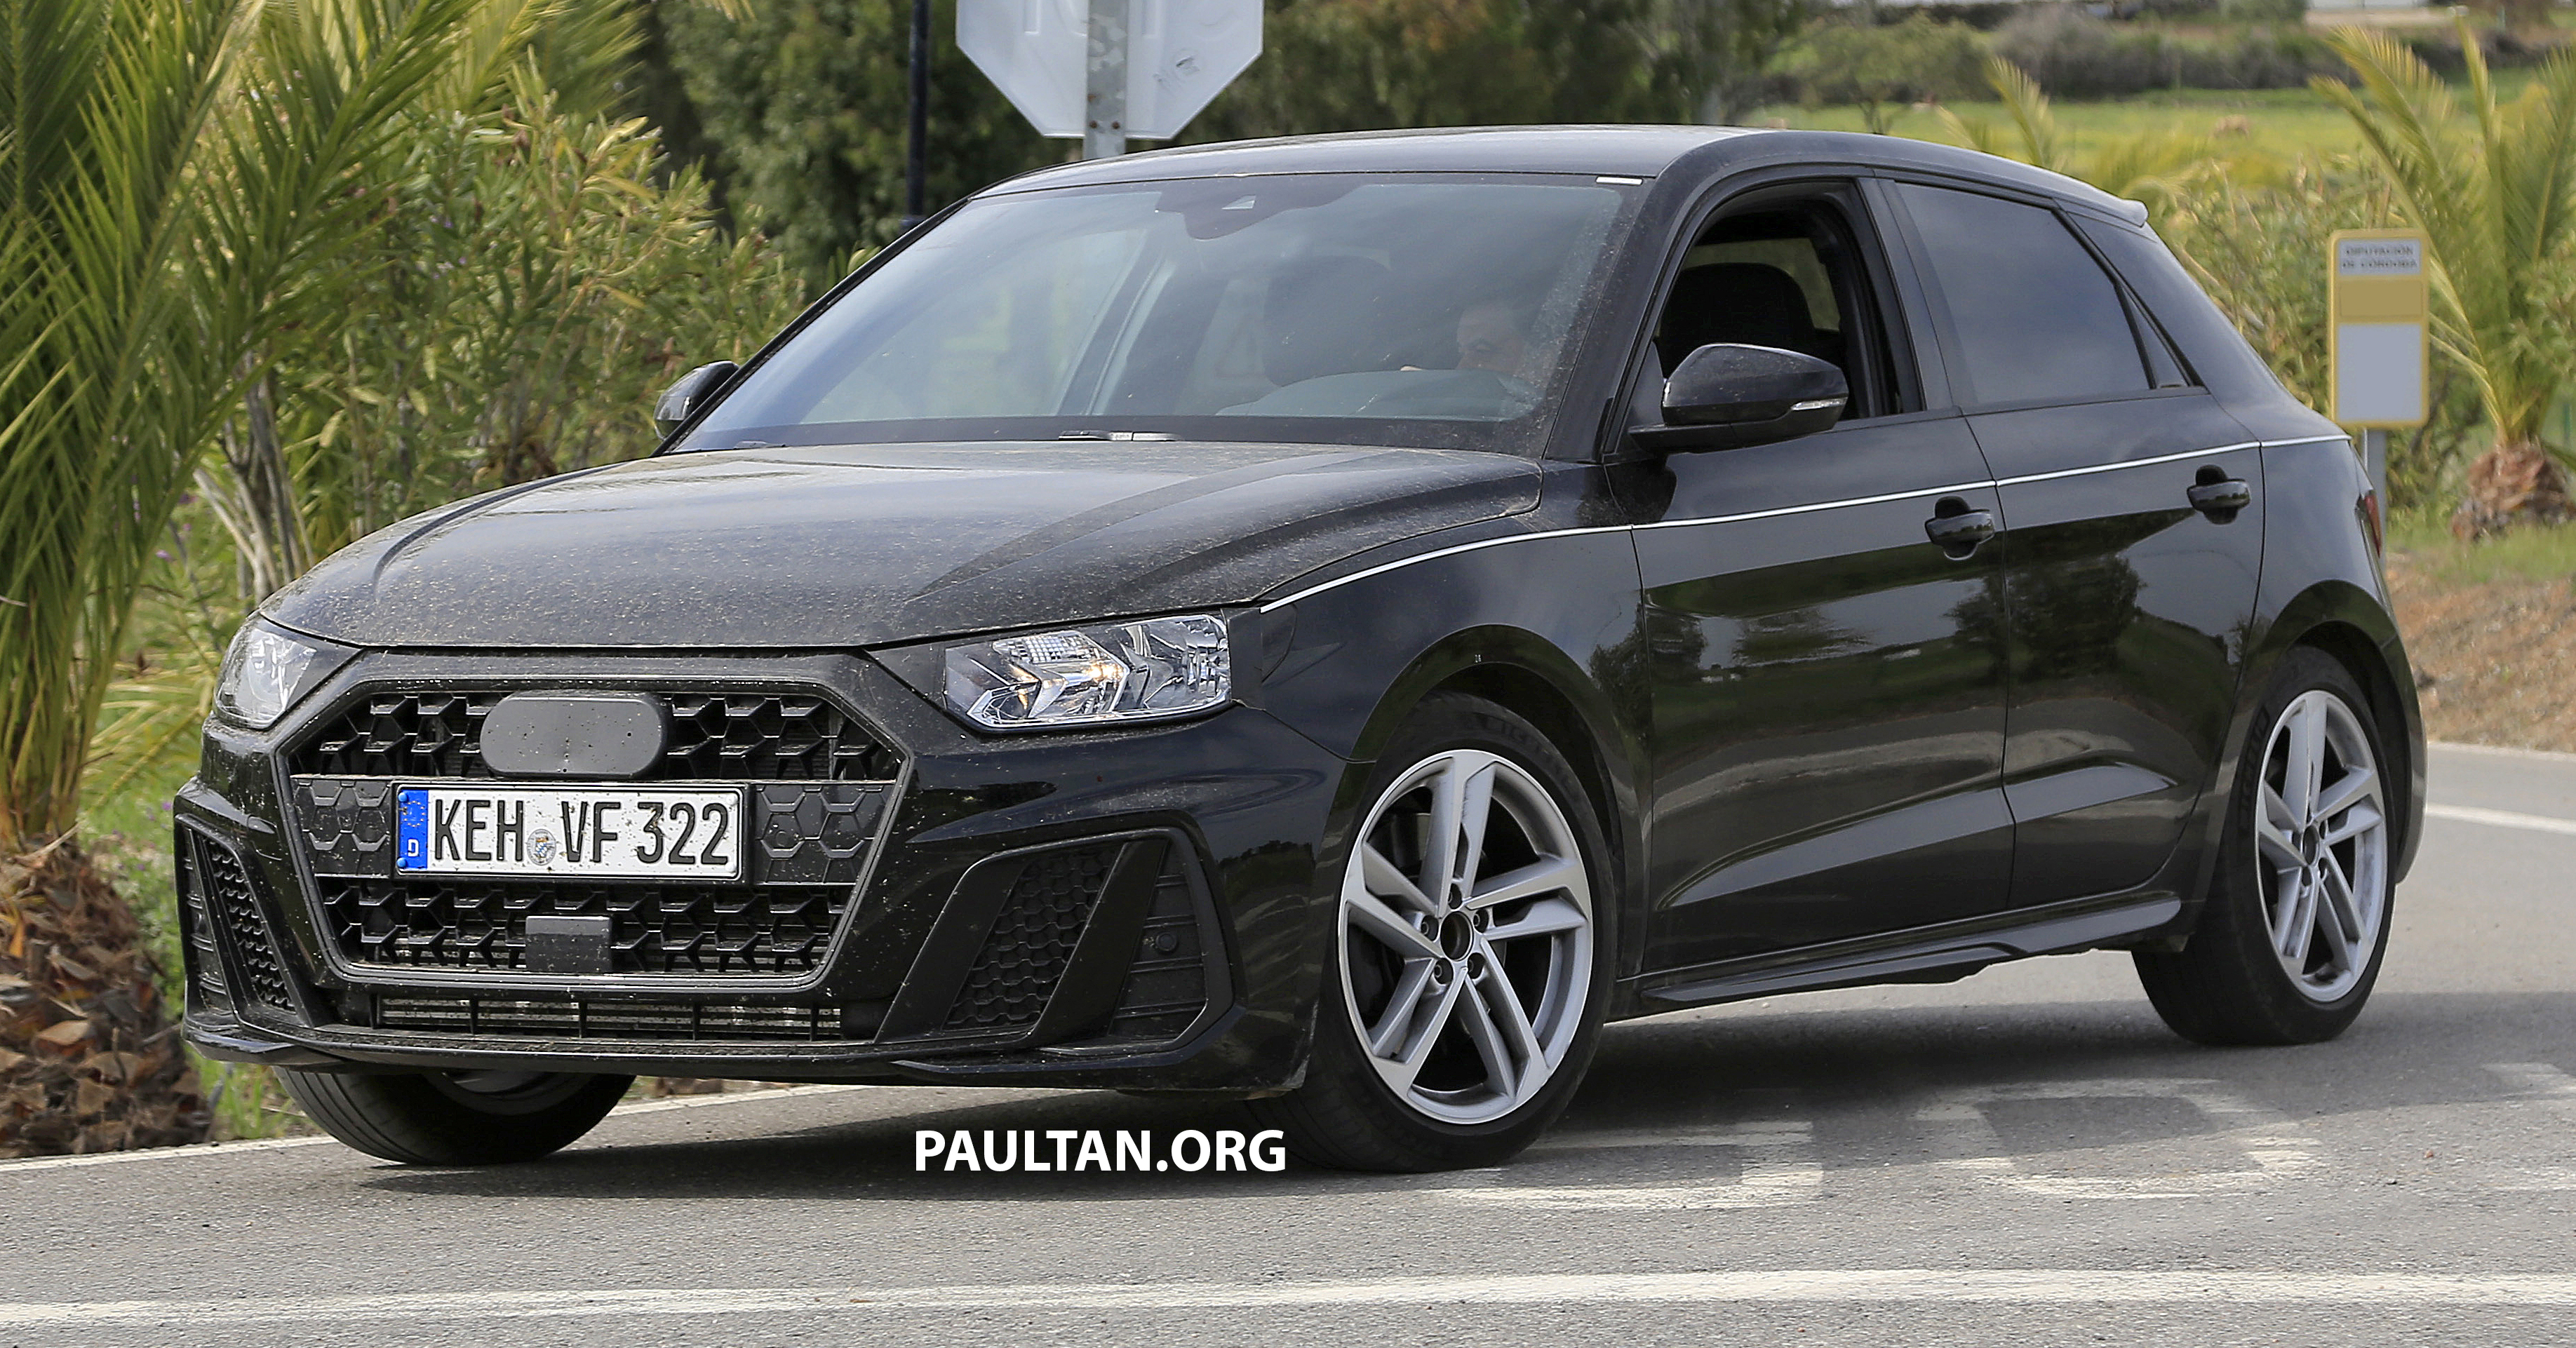 spyshots 2019 audi a1 seen with less camouflage. Black Bedroom Furniture Sets. Home Design Ideas